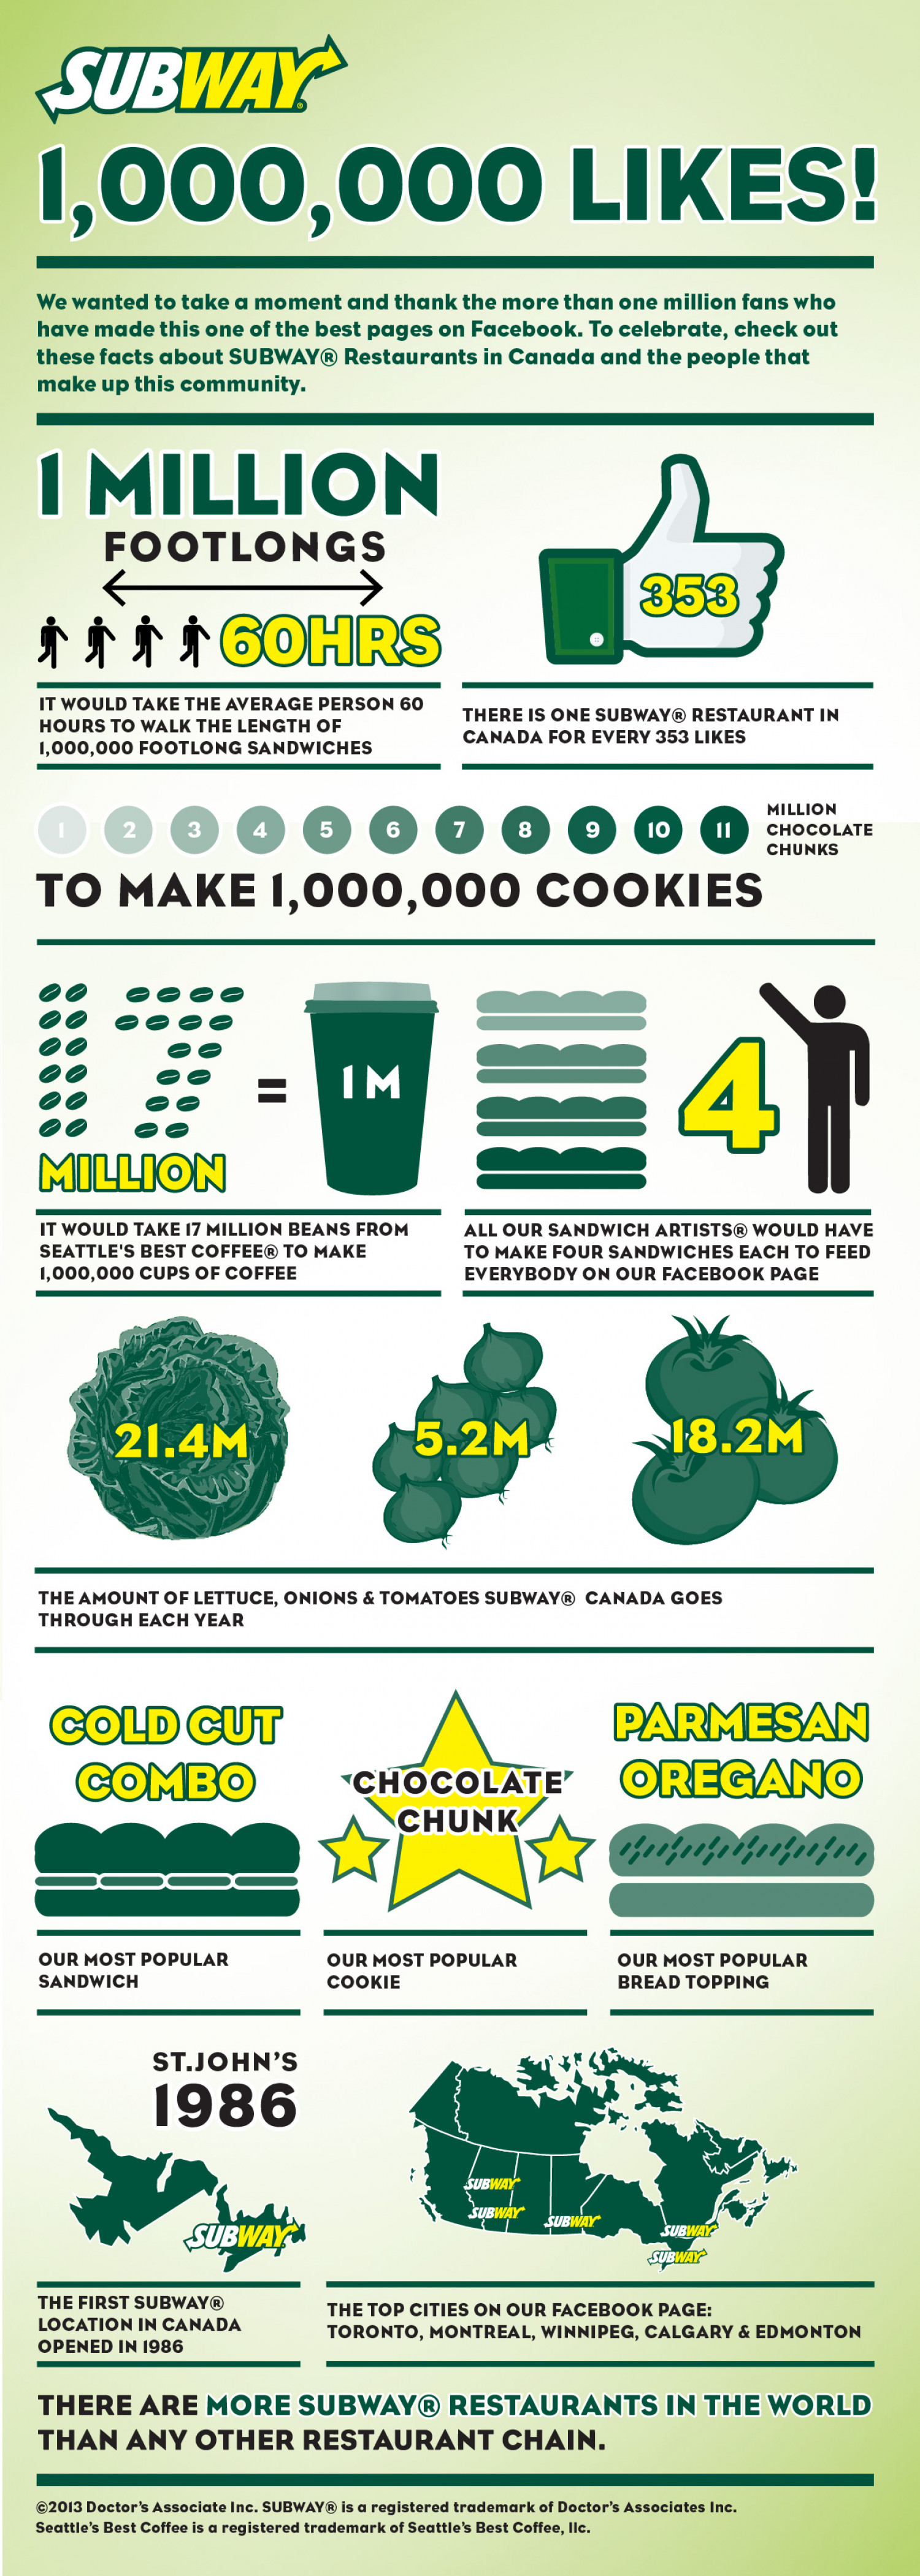 Subway 1,000,000 Likes Infographic